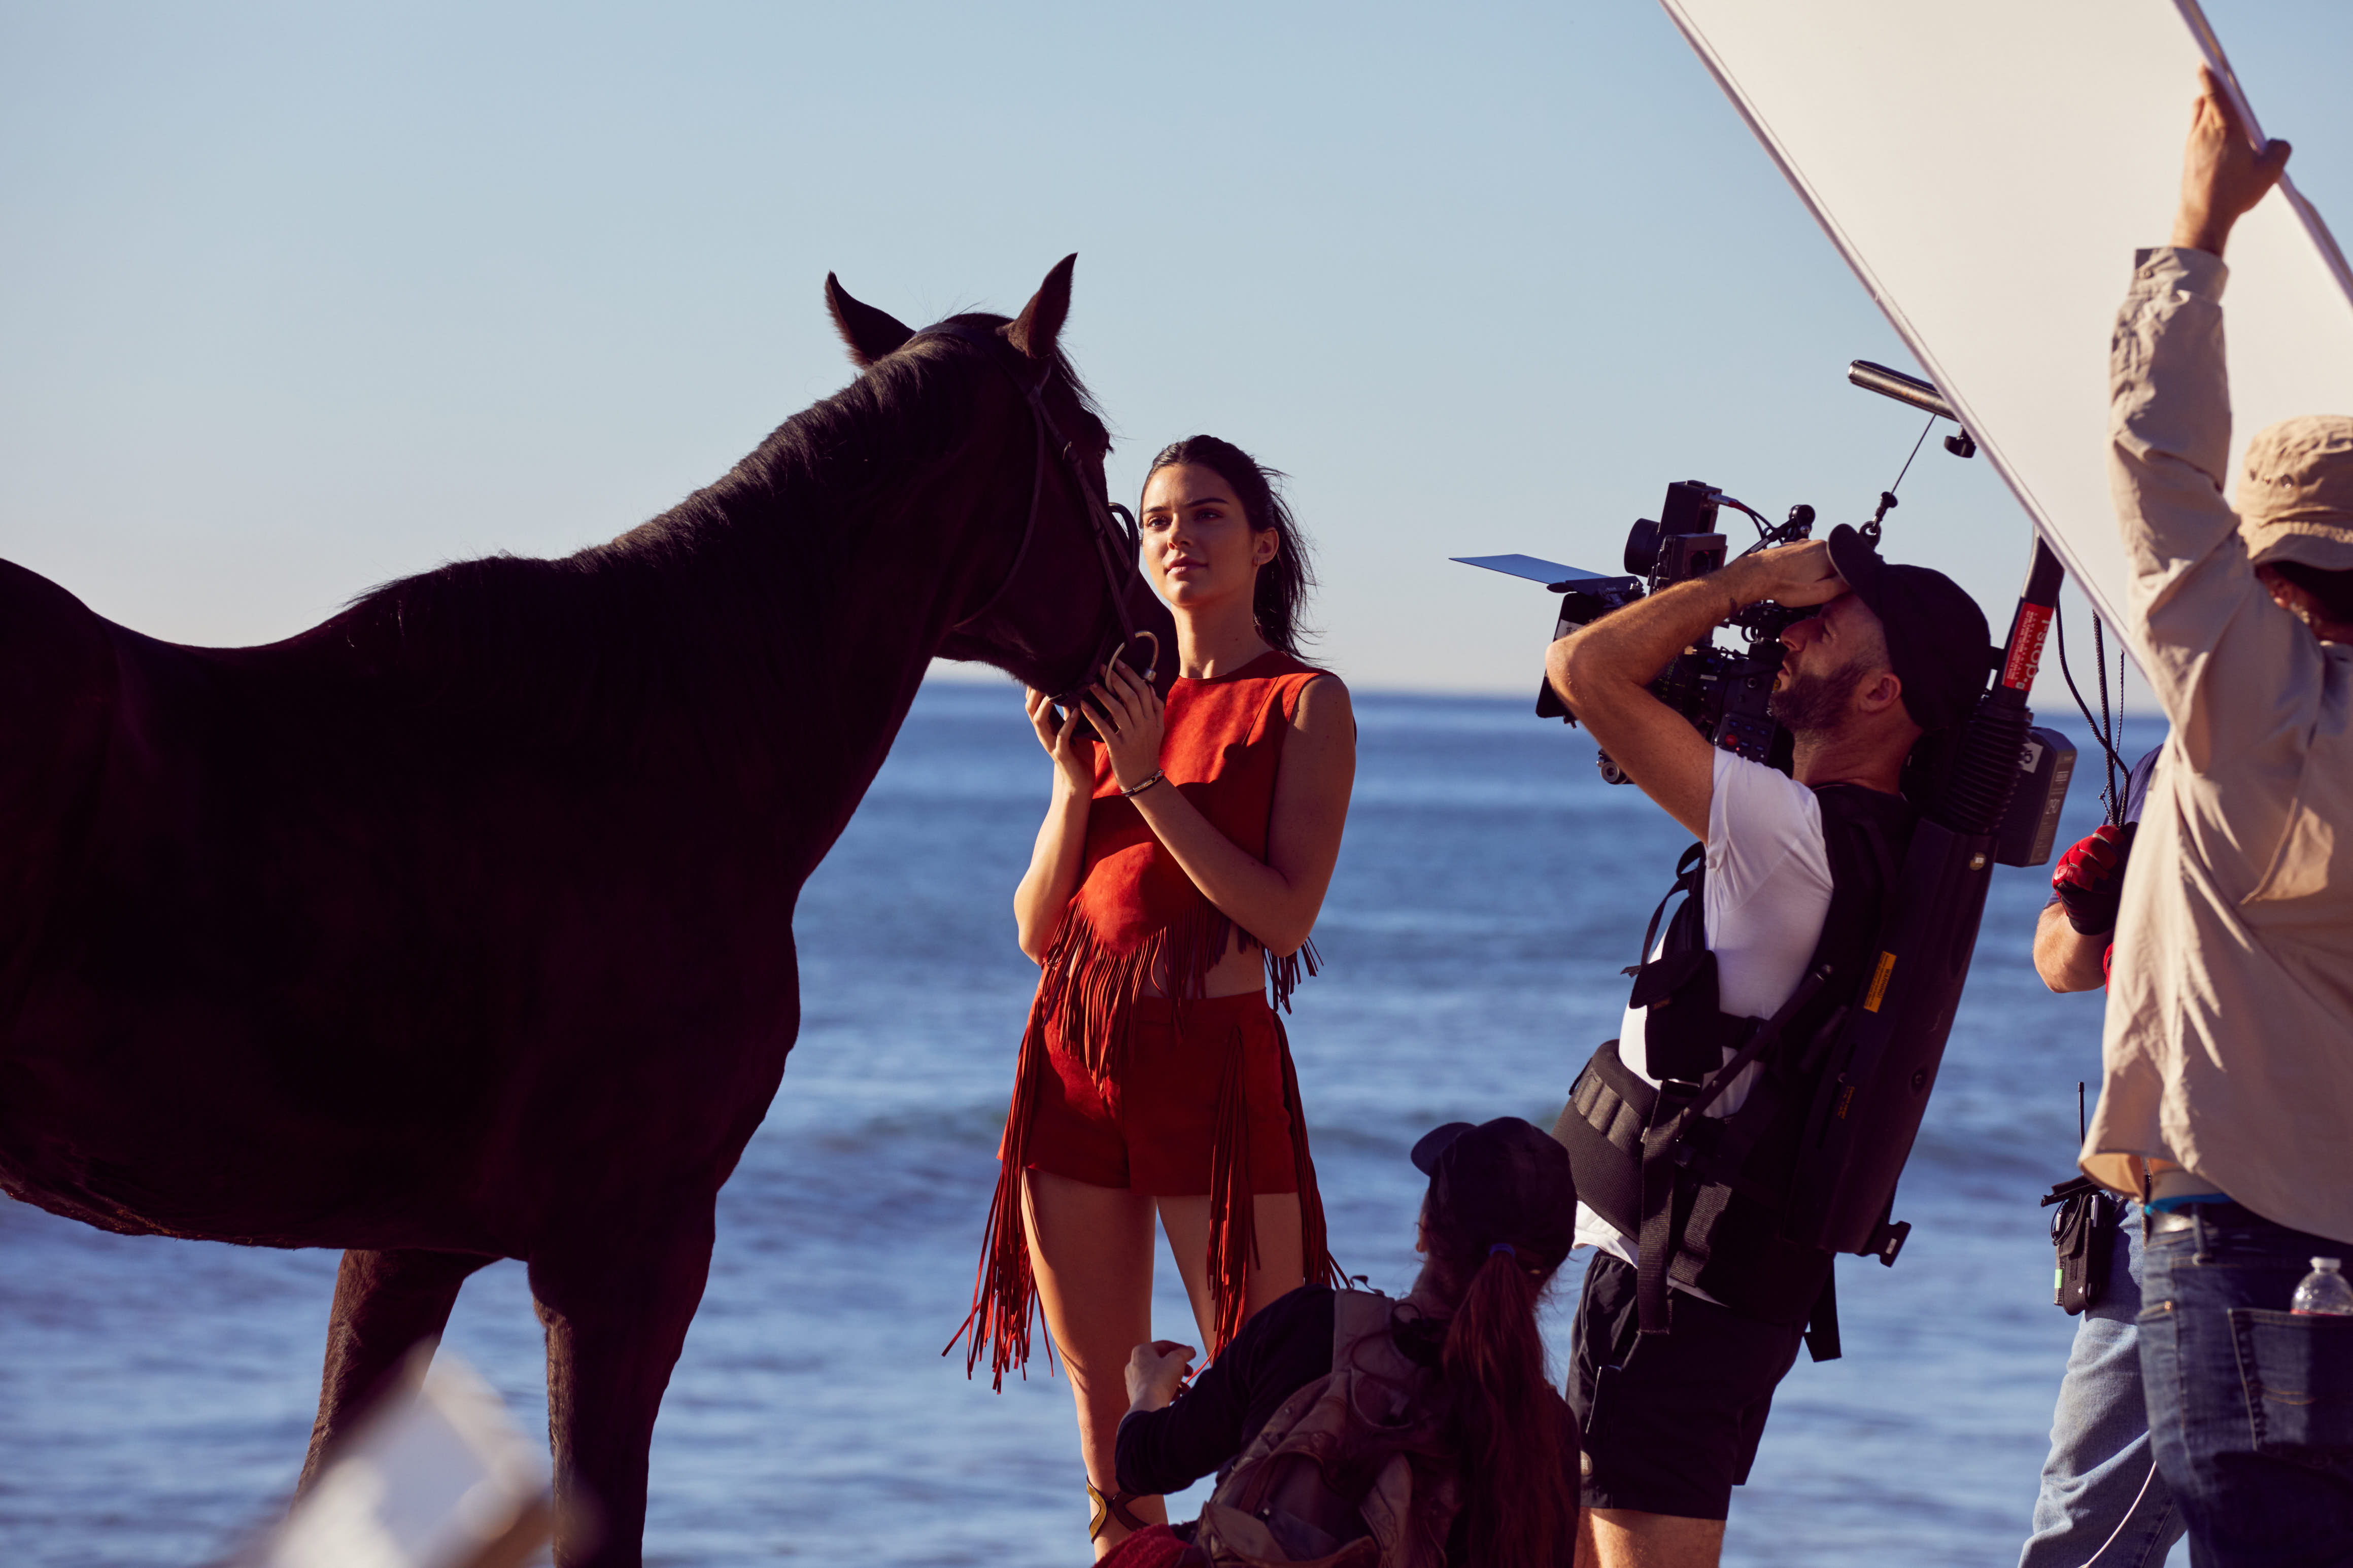 Longchamp The Ride with Kendall Jenner